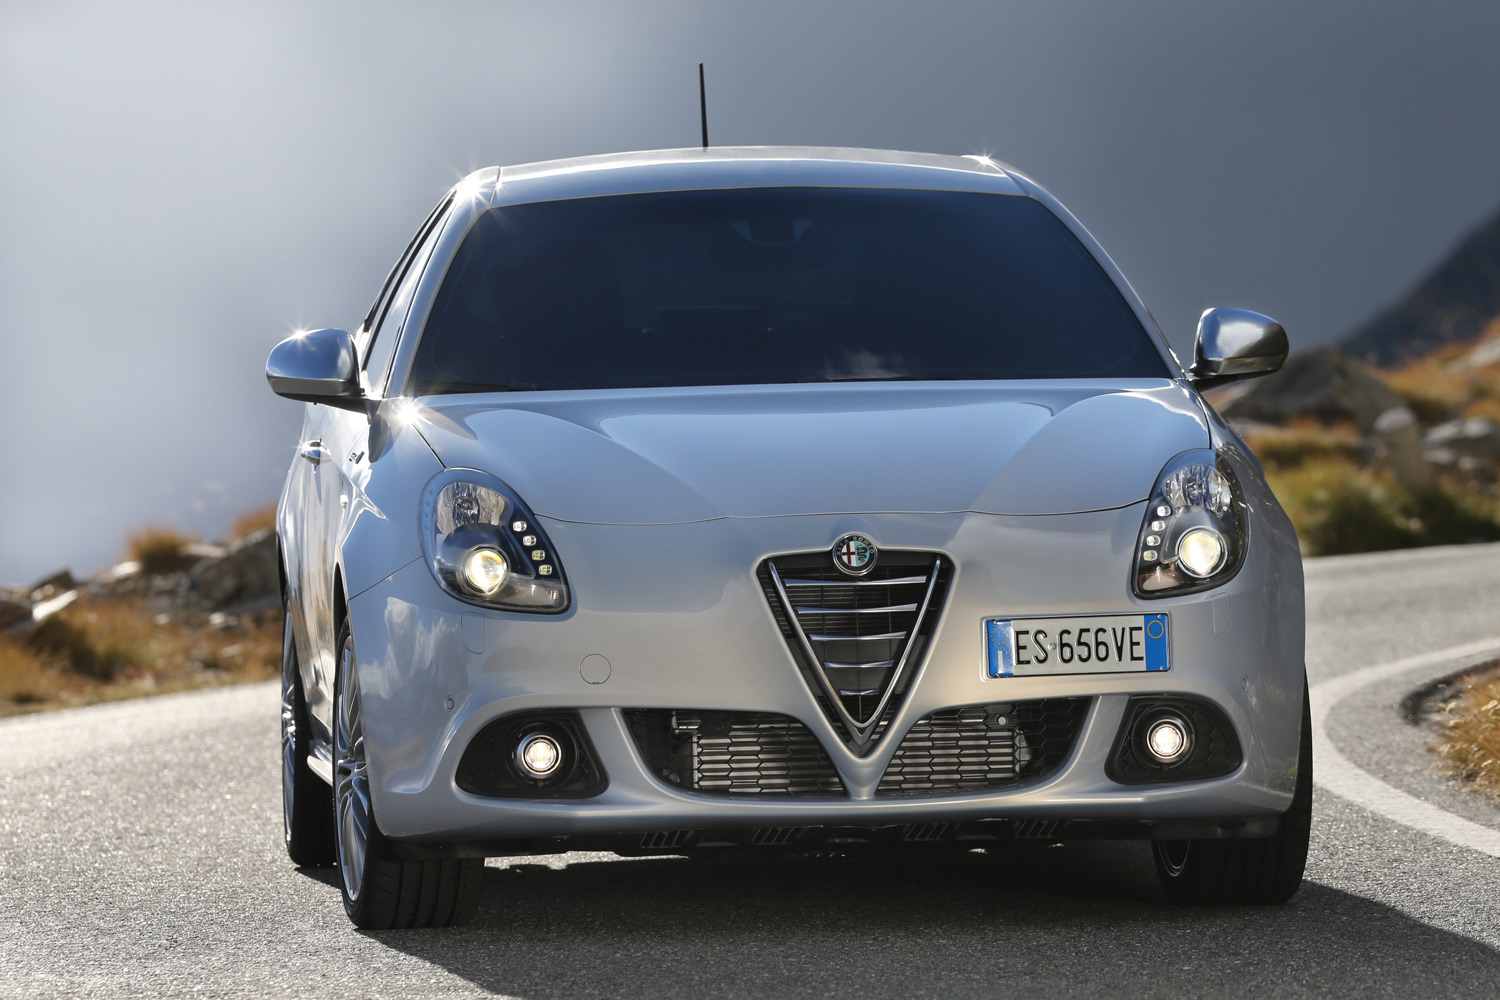 essai alfa romeo giulietta my2014 multiair vraie volution speedfans. Black Bedroom Furniture Sets. Home Design Ideas